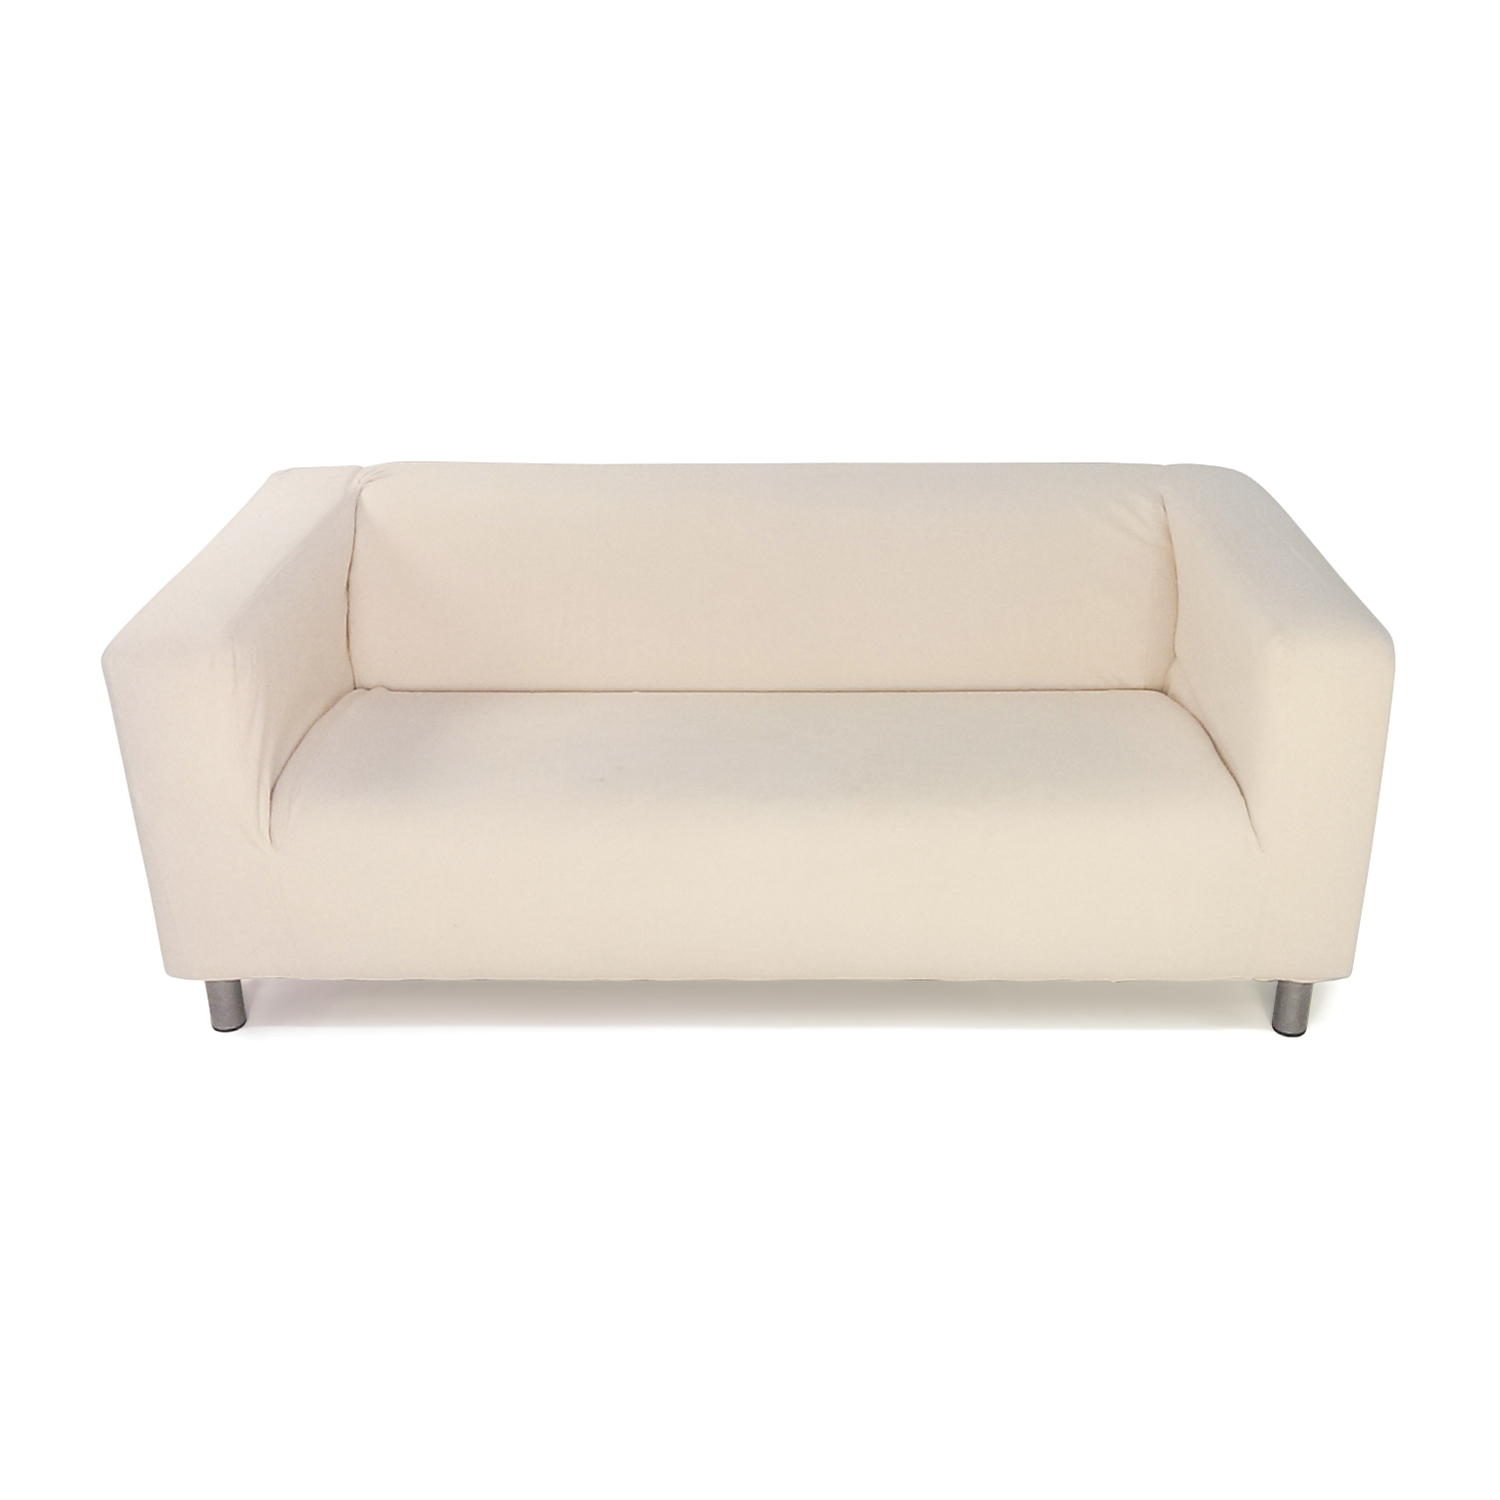 IKEA Klippan Beige Couch on sale